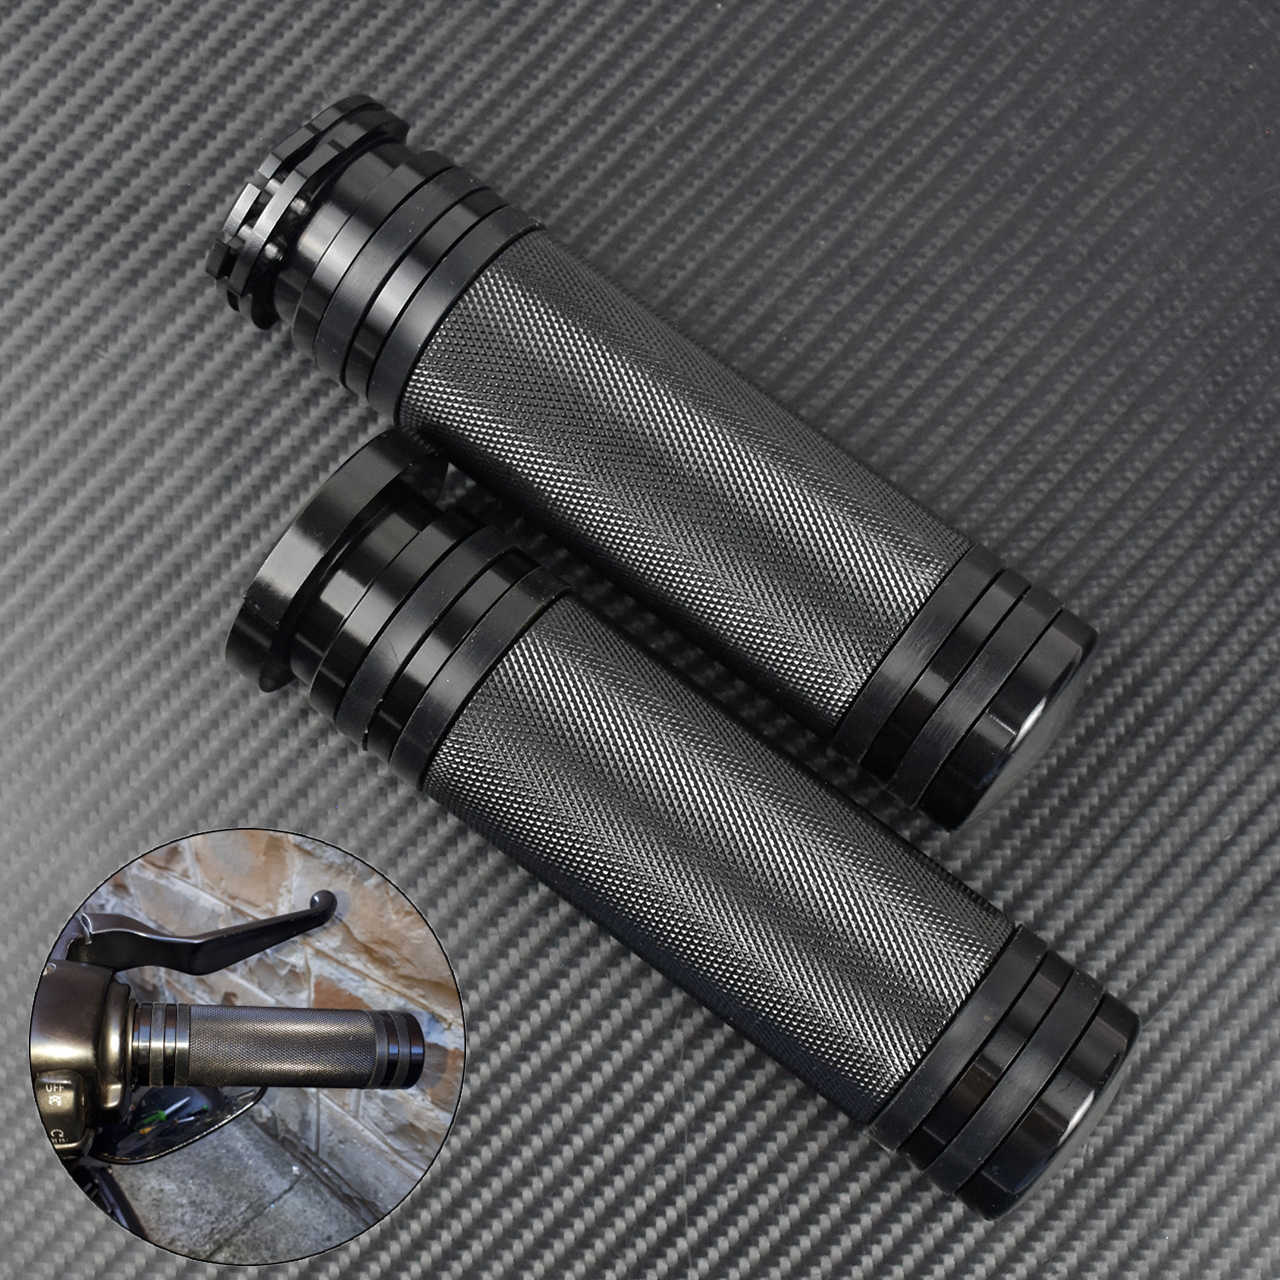 DLLL Universal 25MM 1 CNC Motorcycle Handlebar Hand Grips Bars Covers for Harley Davidson Dyna Sportster XL883 XL1200 X 48